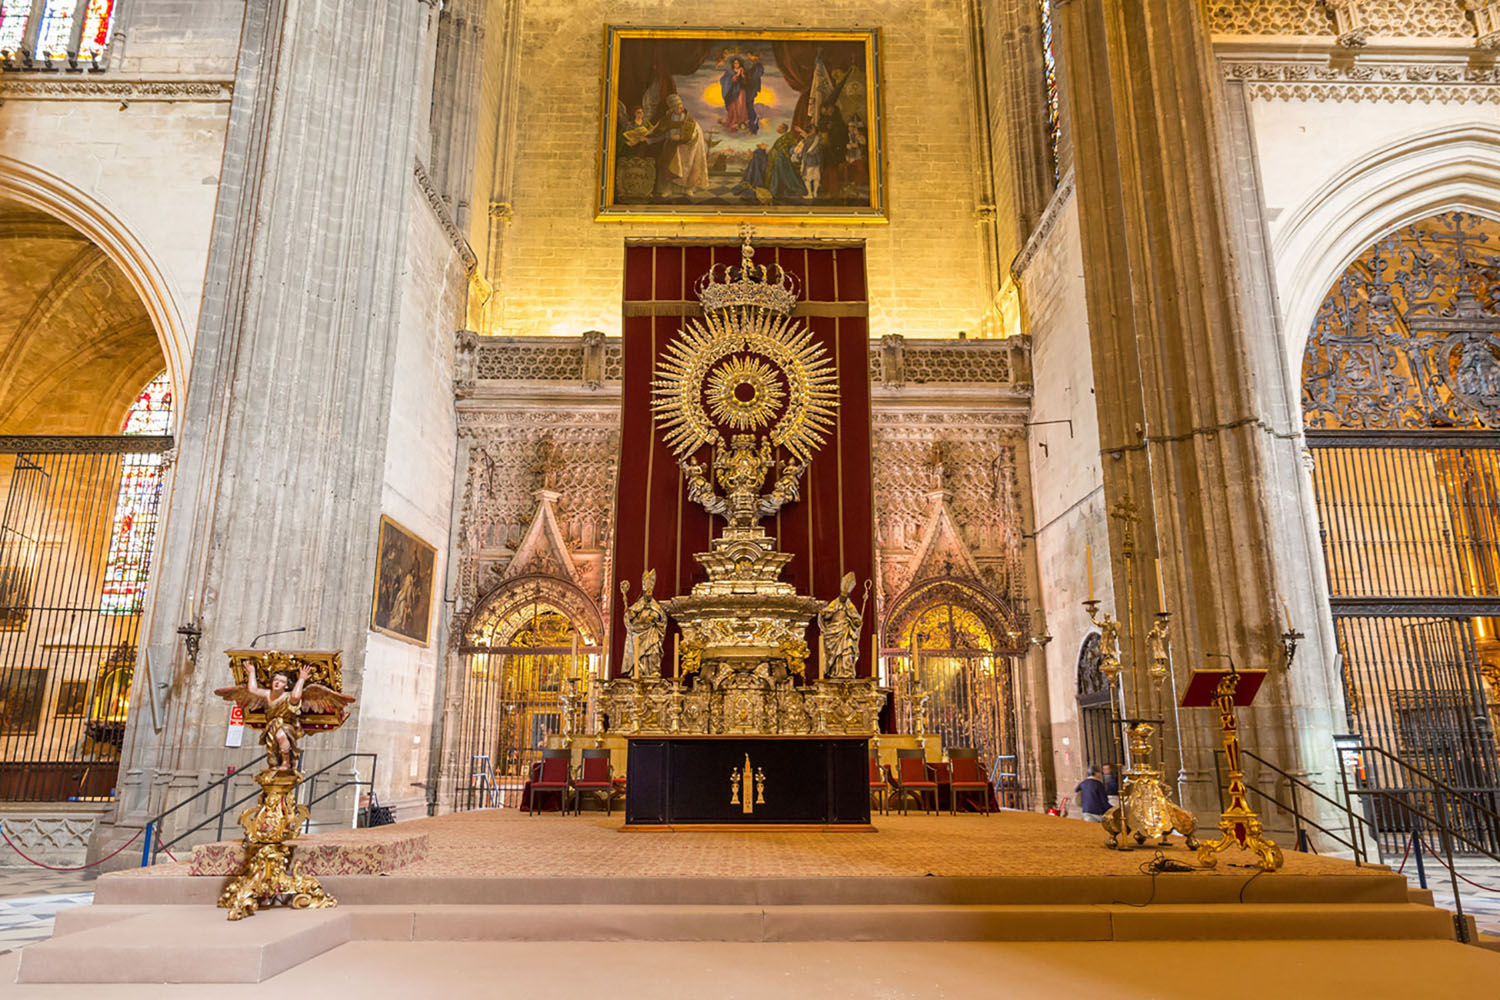 The altar of the Seville Cathedral.